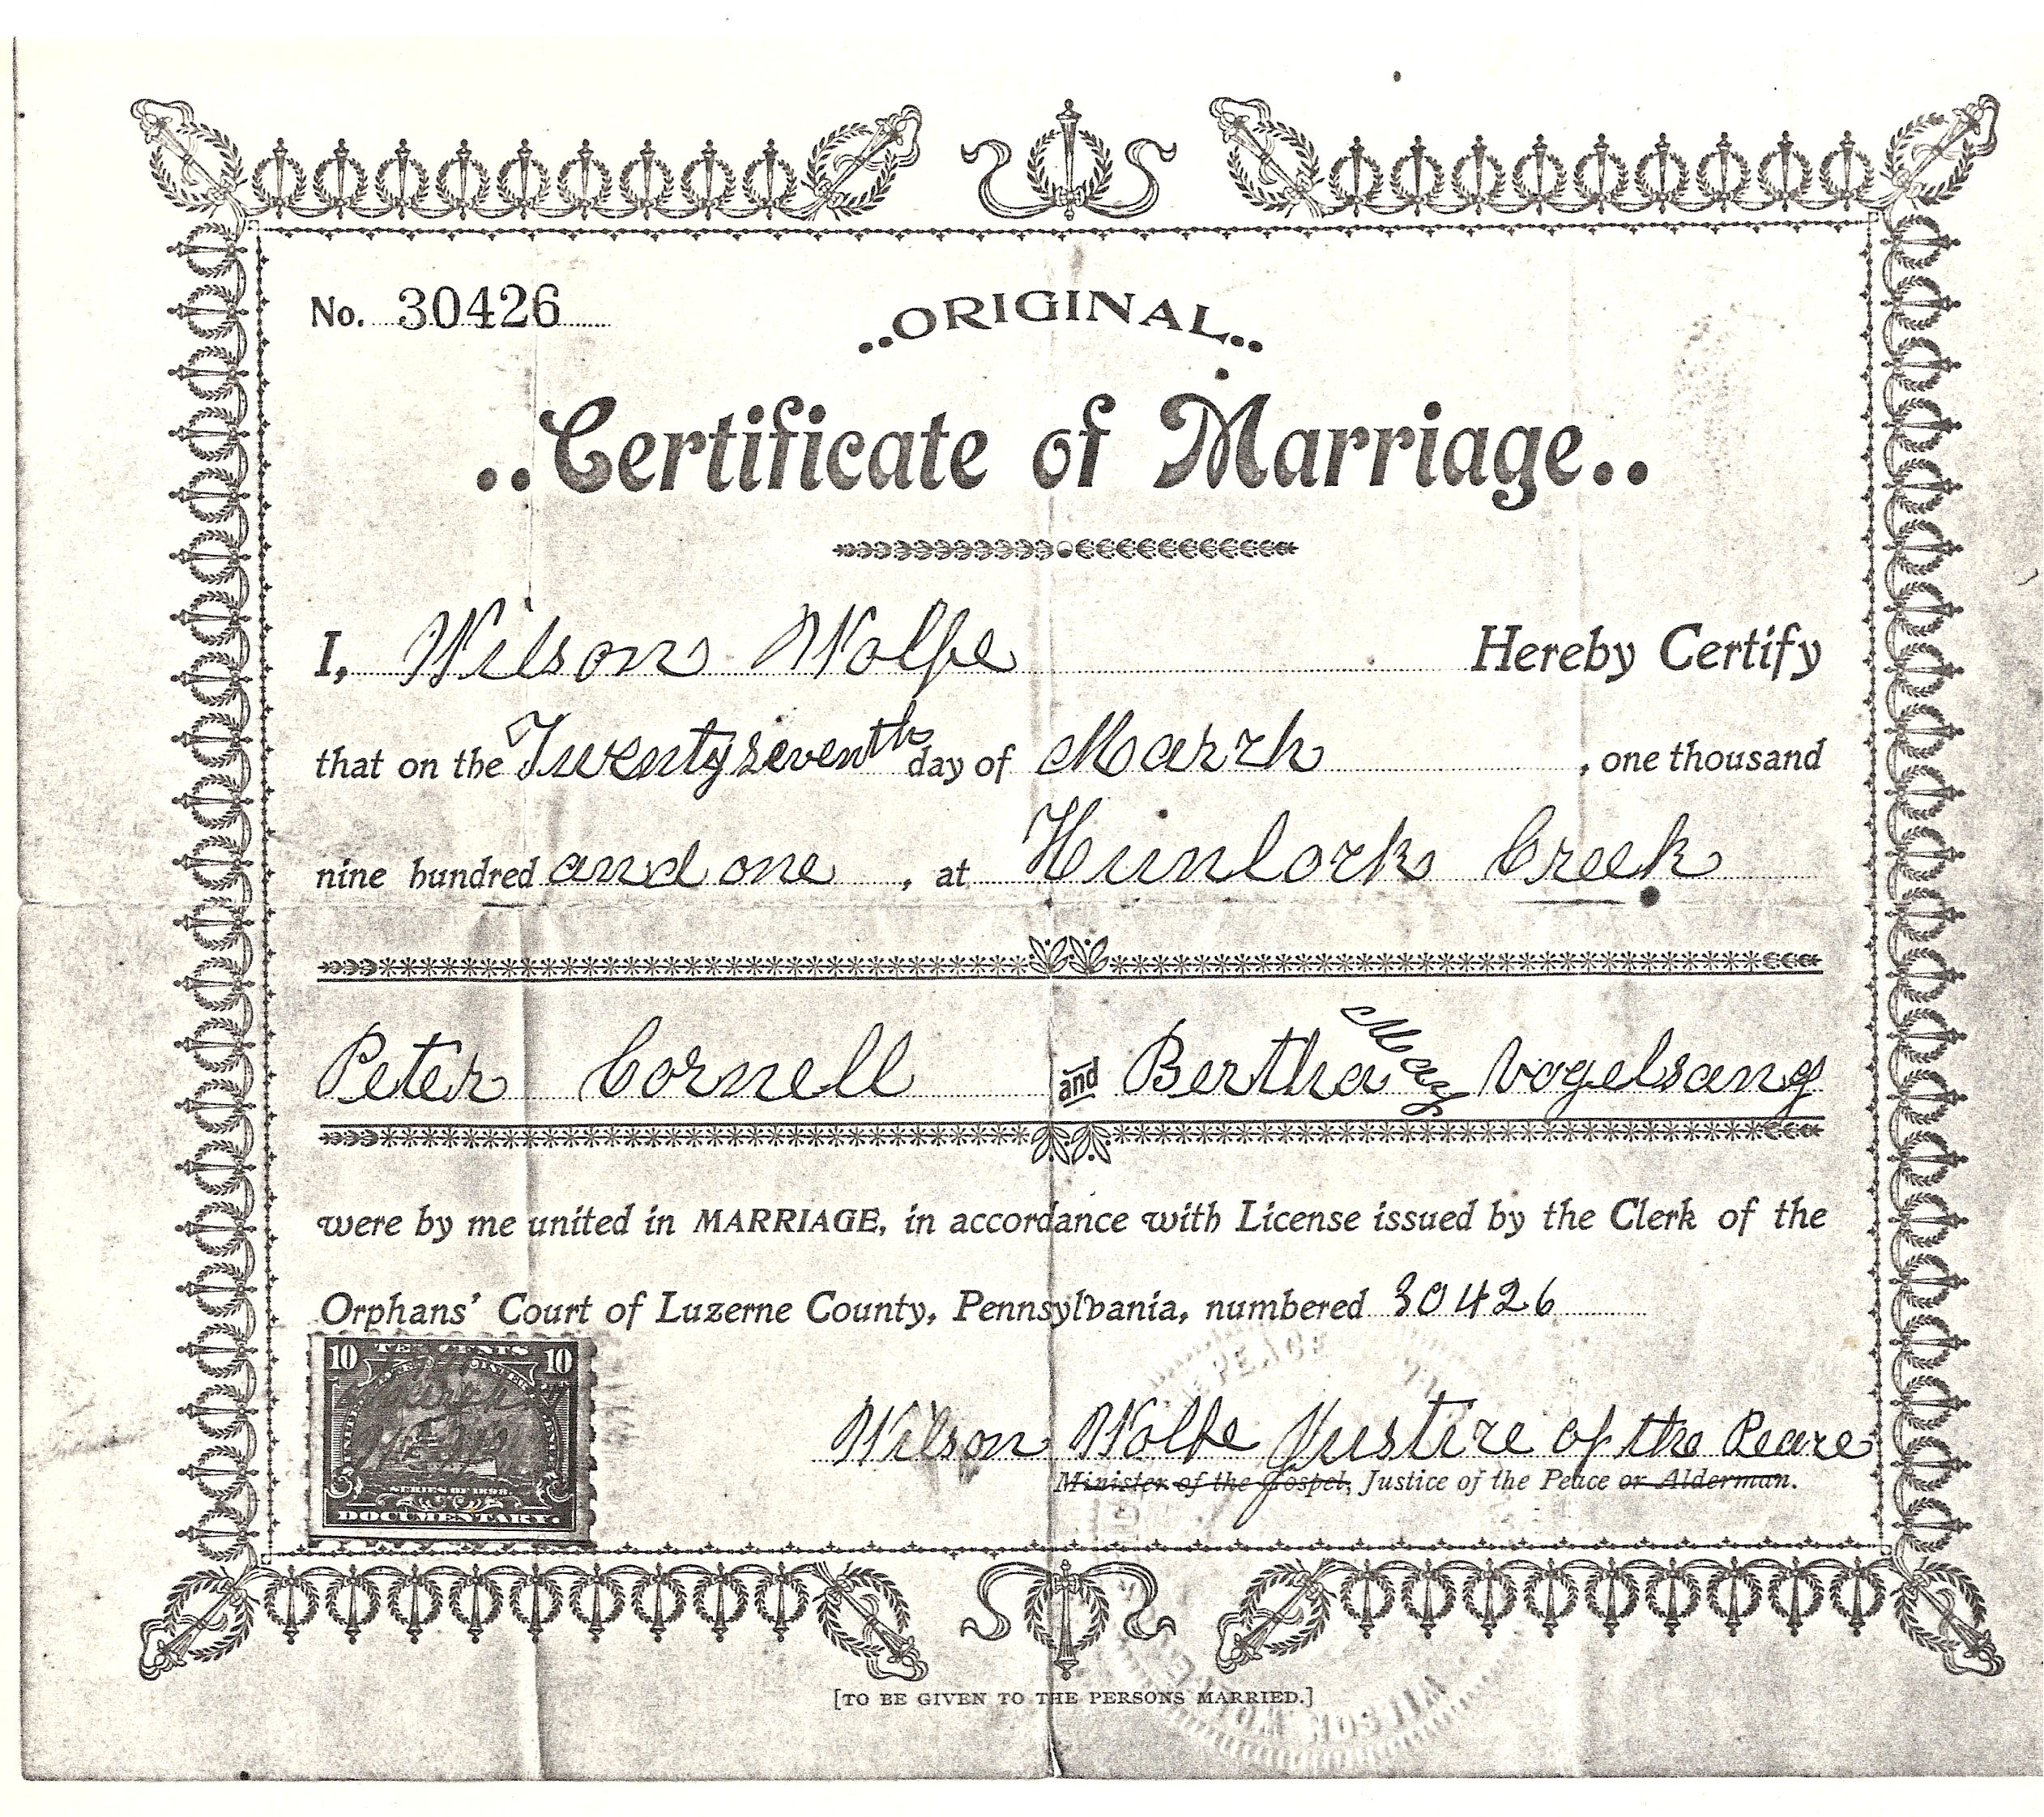 Marriage of Peter Cornell and Bertha May Vogelsang